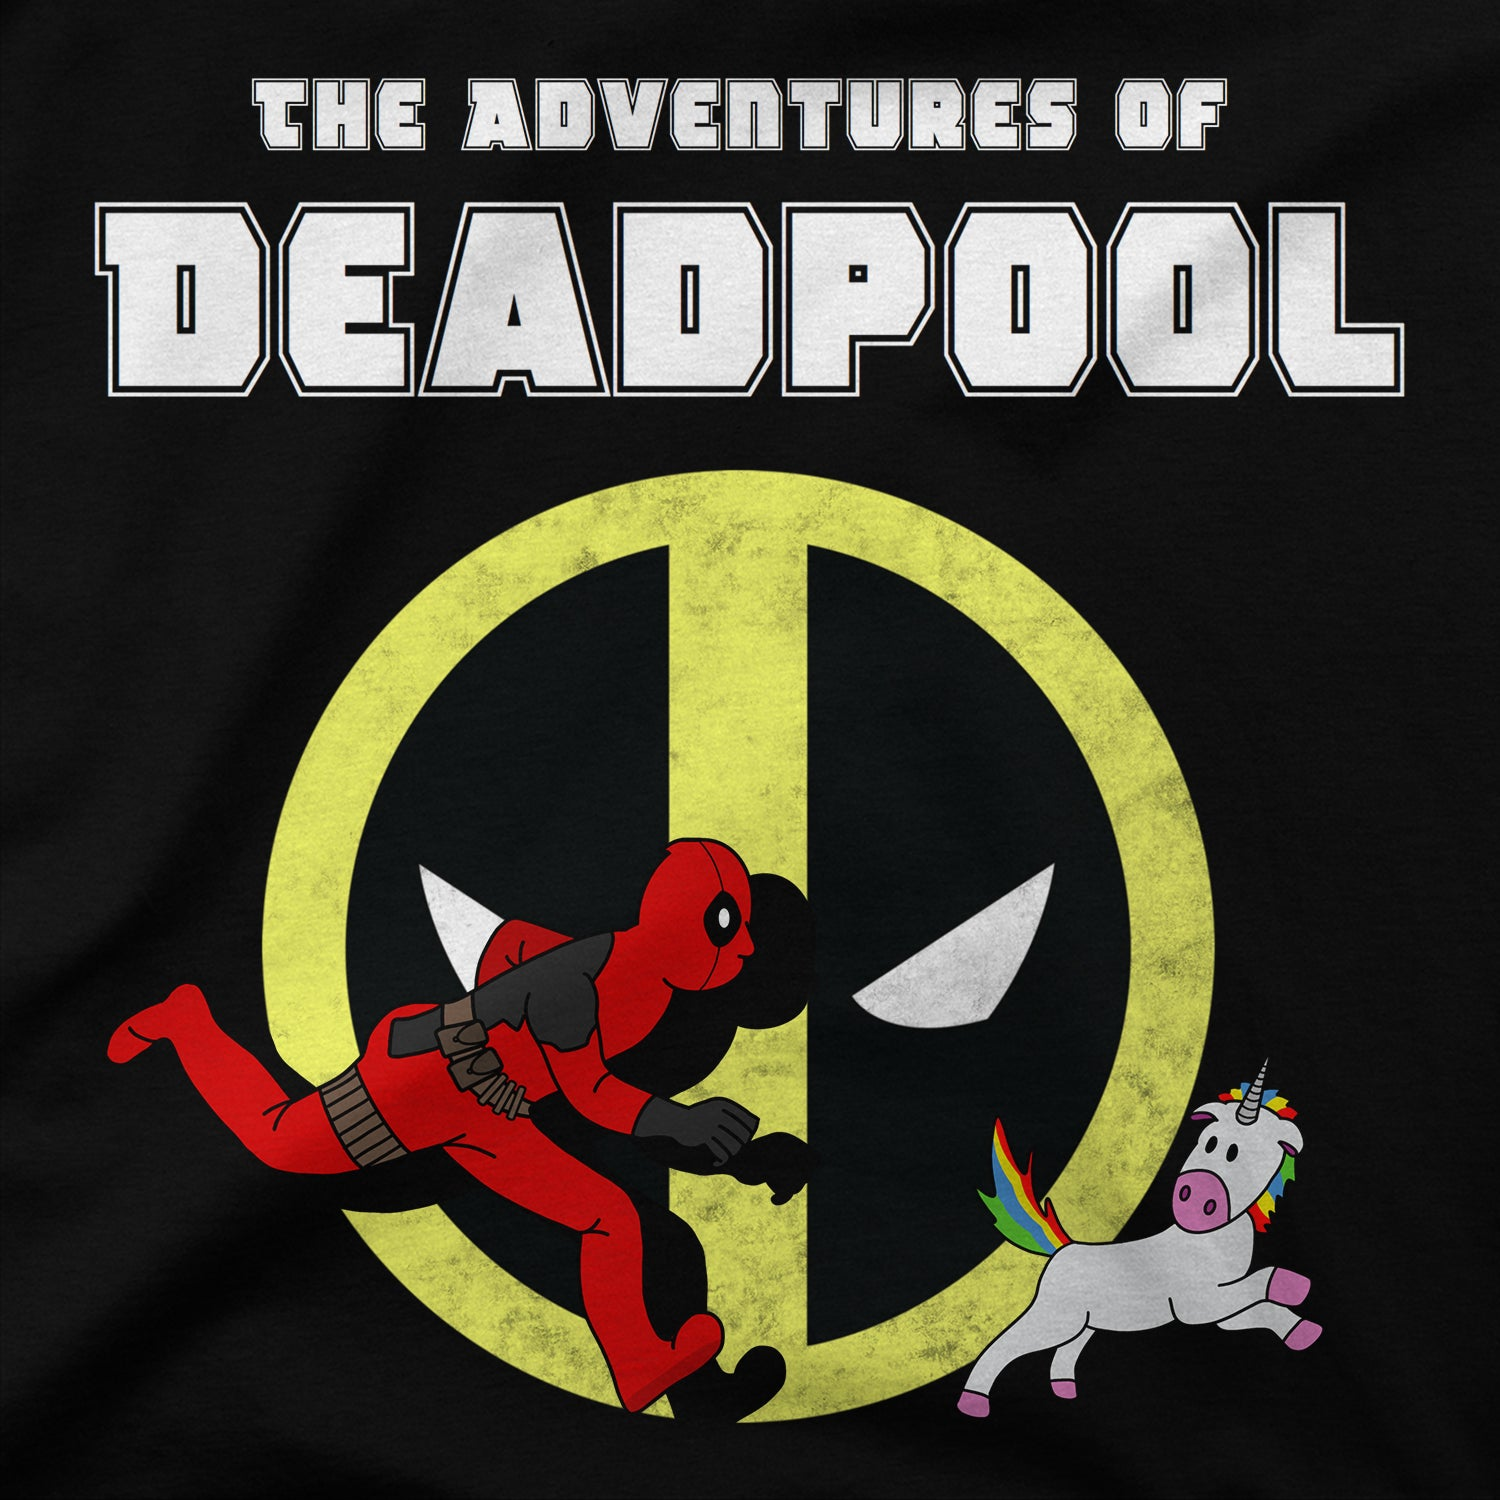 The Adventures of Deadpool